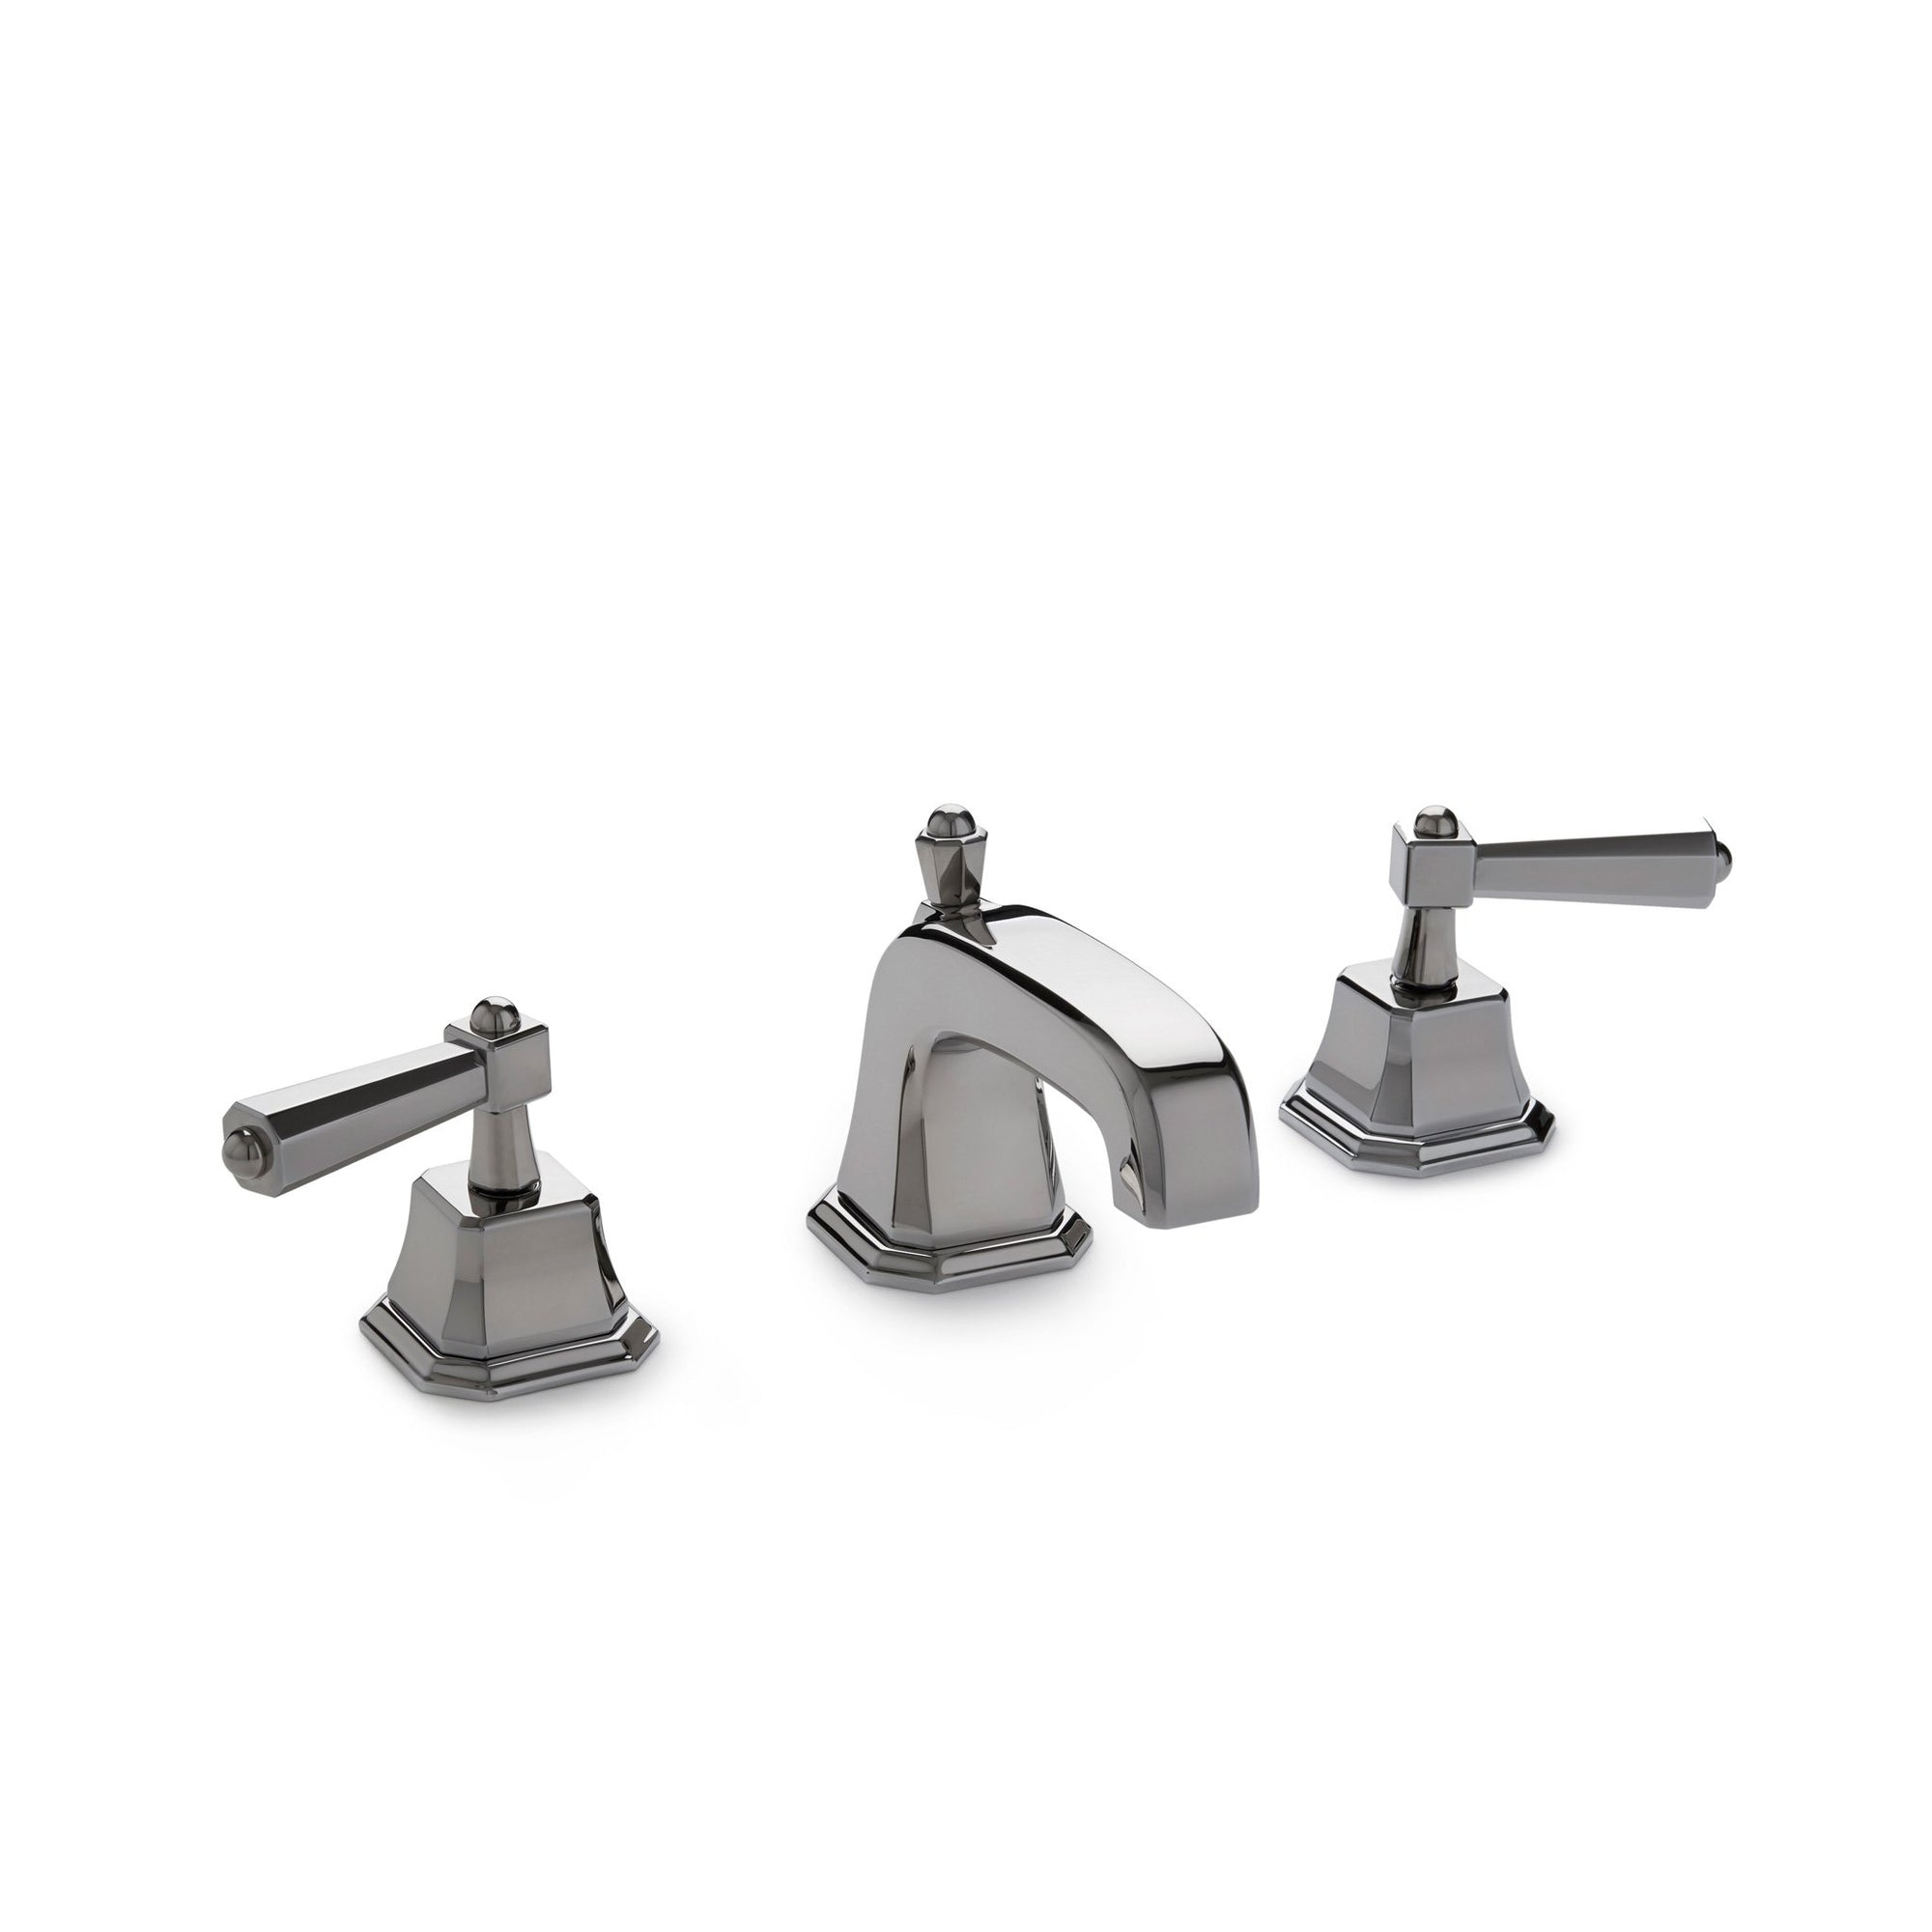 0980BSN-CP Sherle Wagner International Harrison Lever Faucet Set in Polished Chrome metal finish